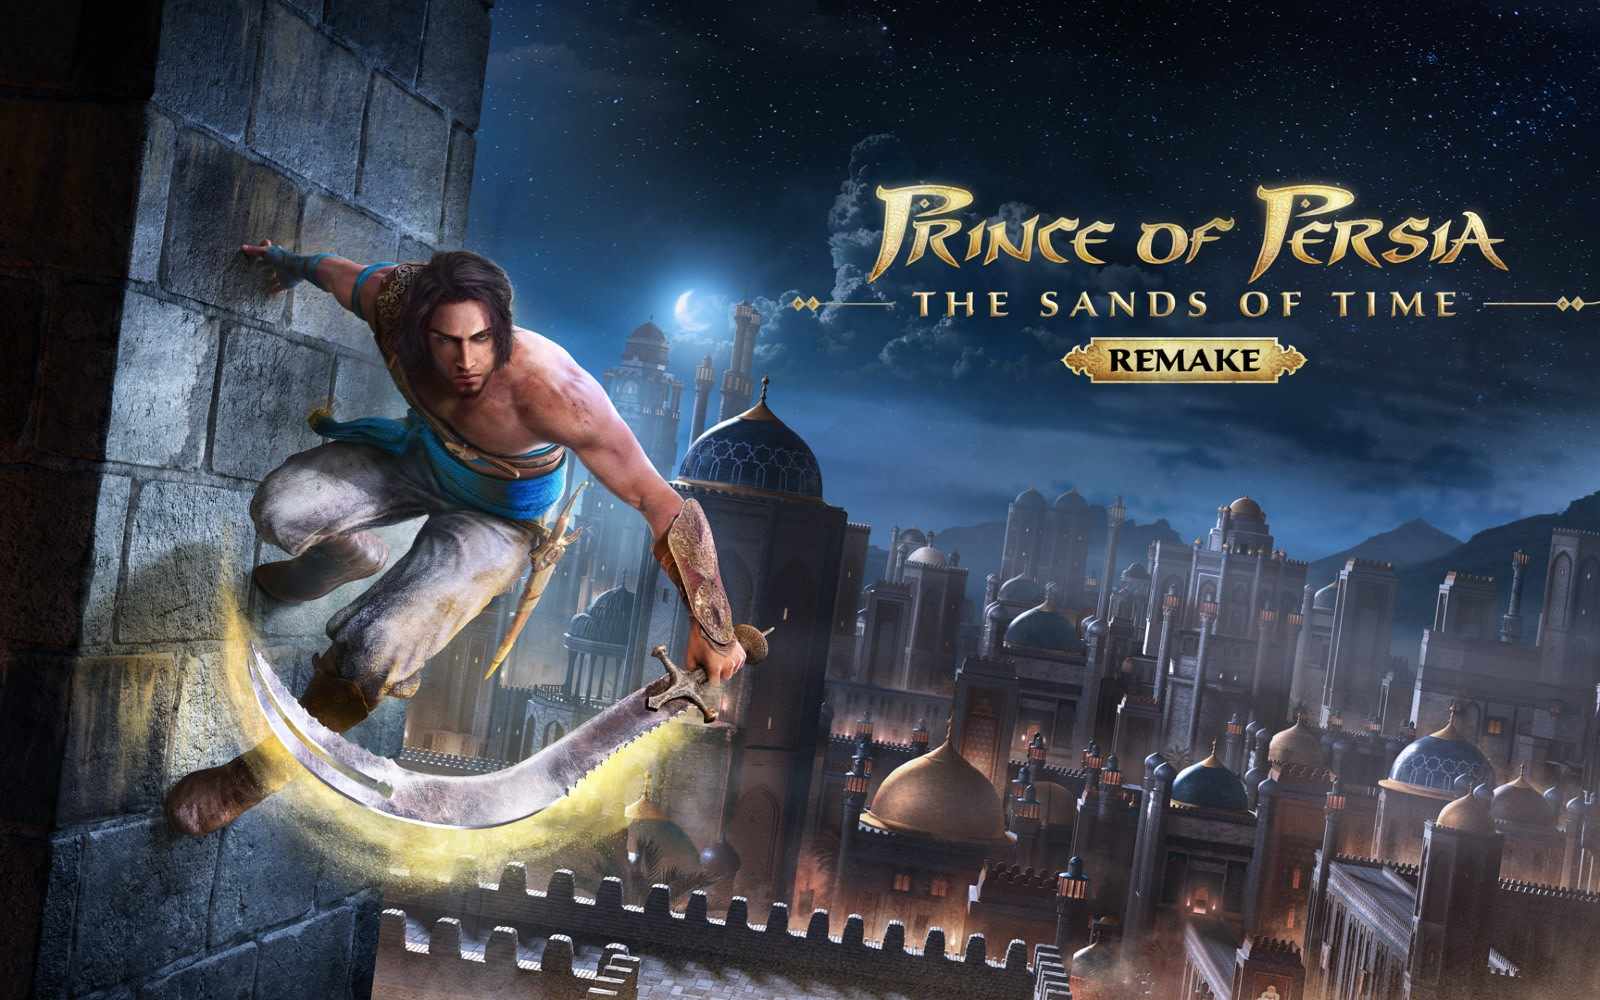 Prince of Persia: Sands of Time' remake arrives in January 2021 | Engadget